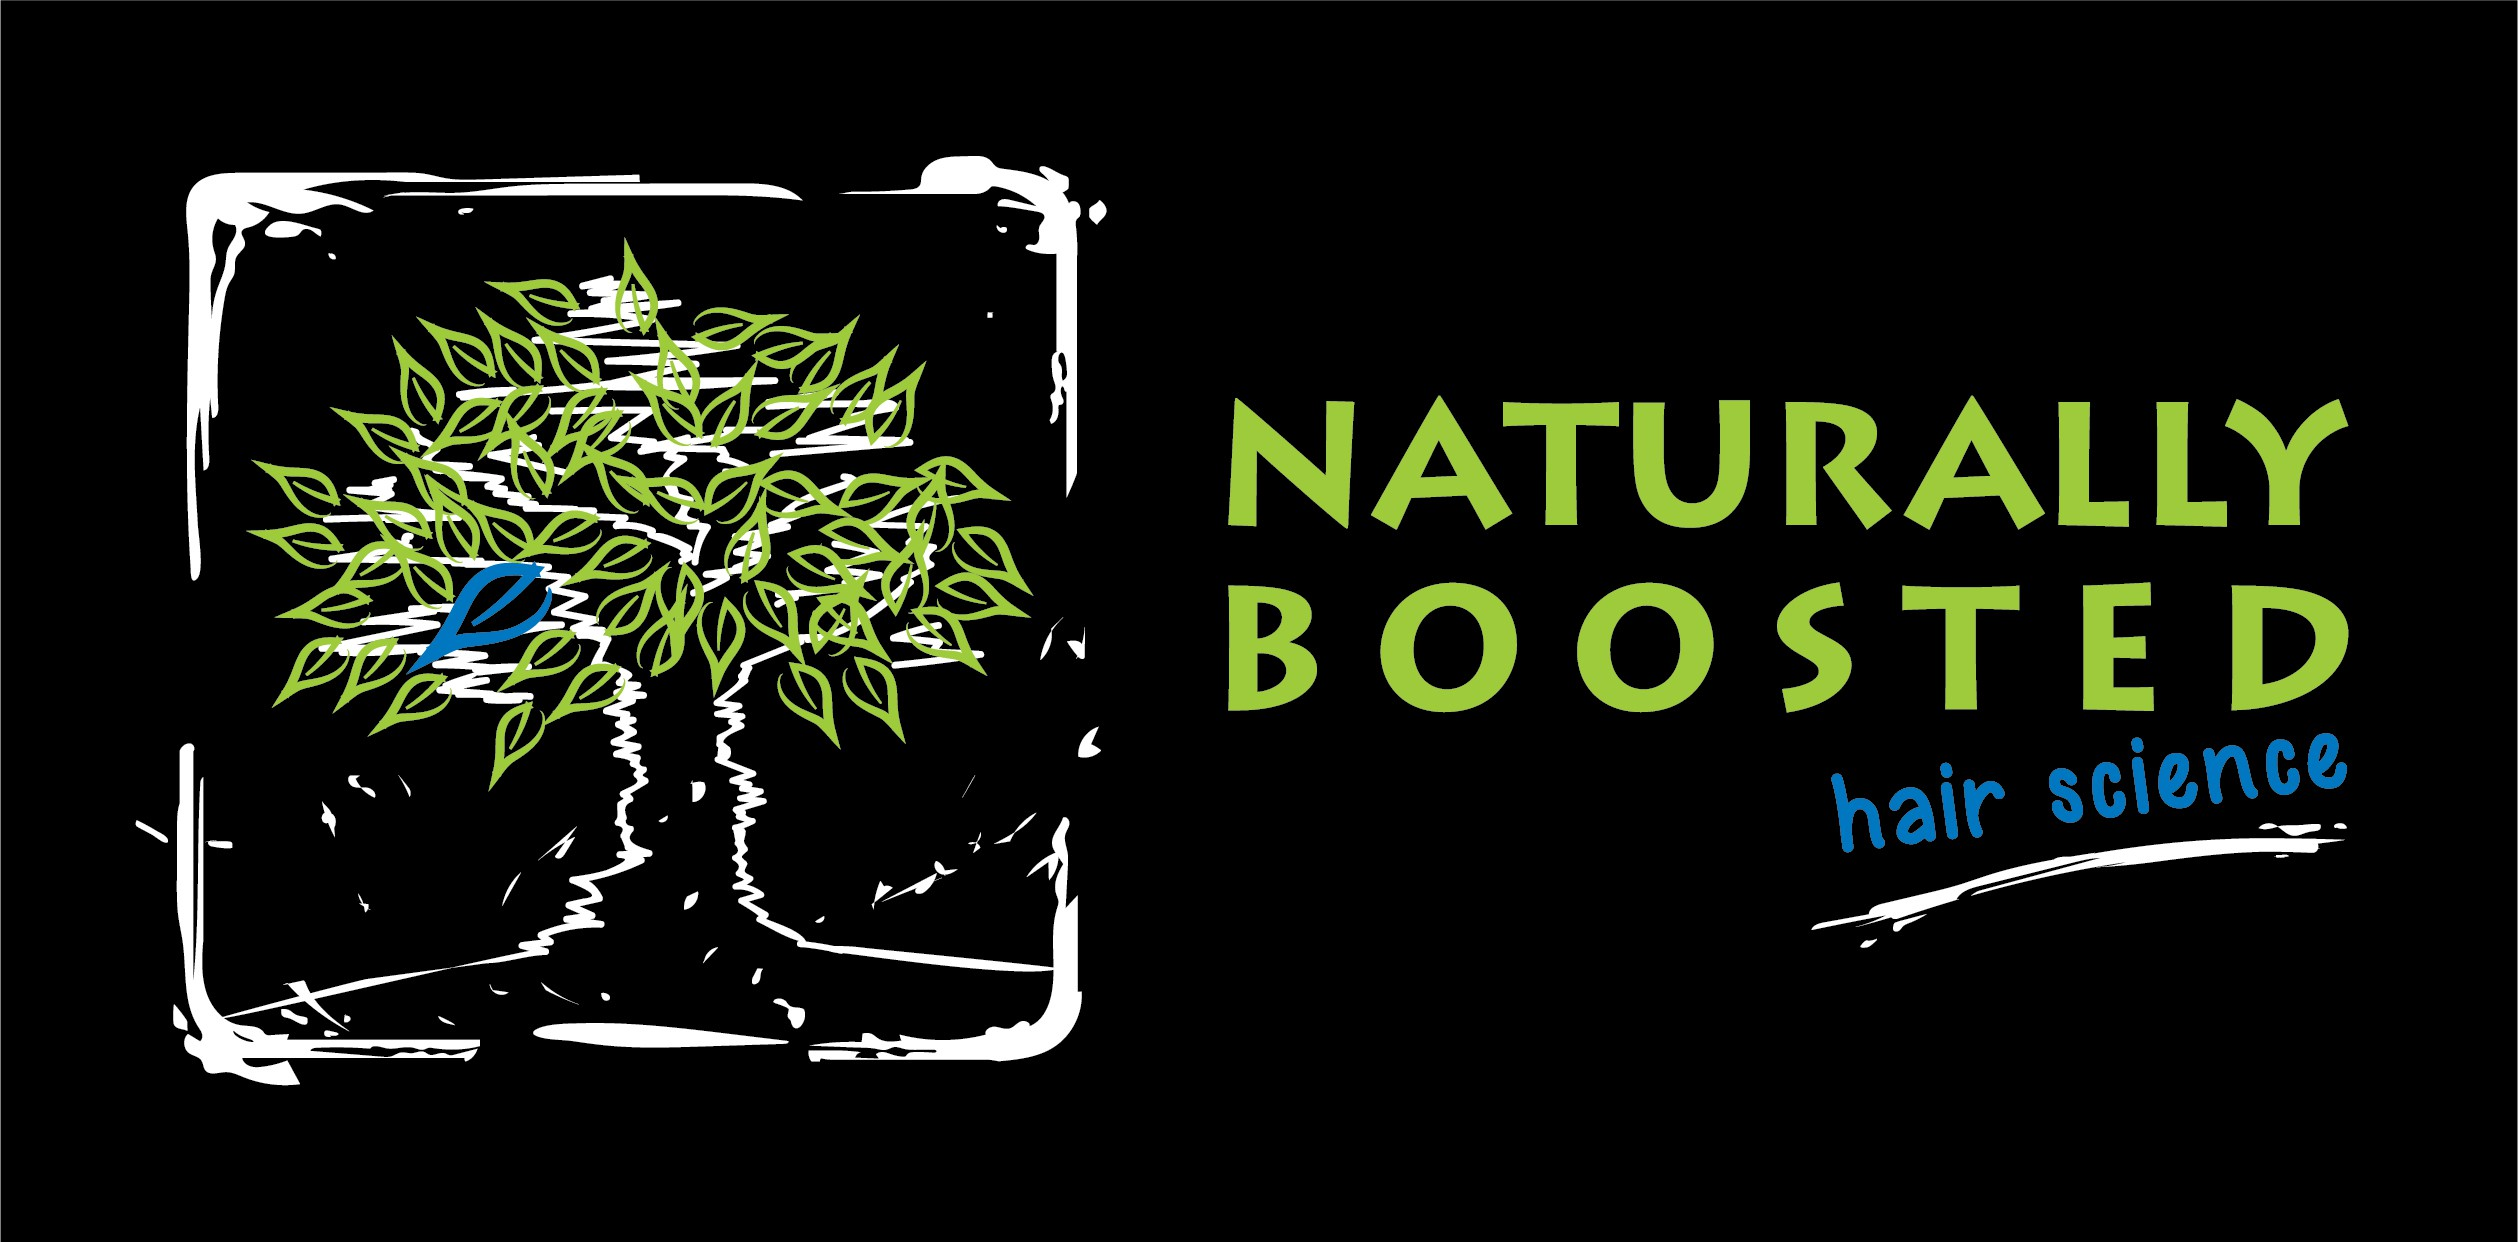 We need a fun logo to excite people about online natural cosmetics